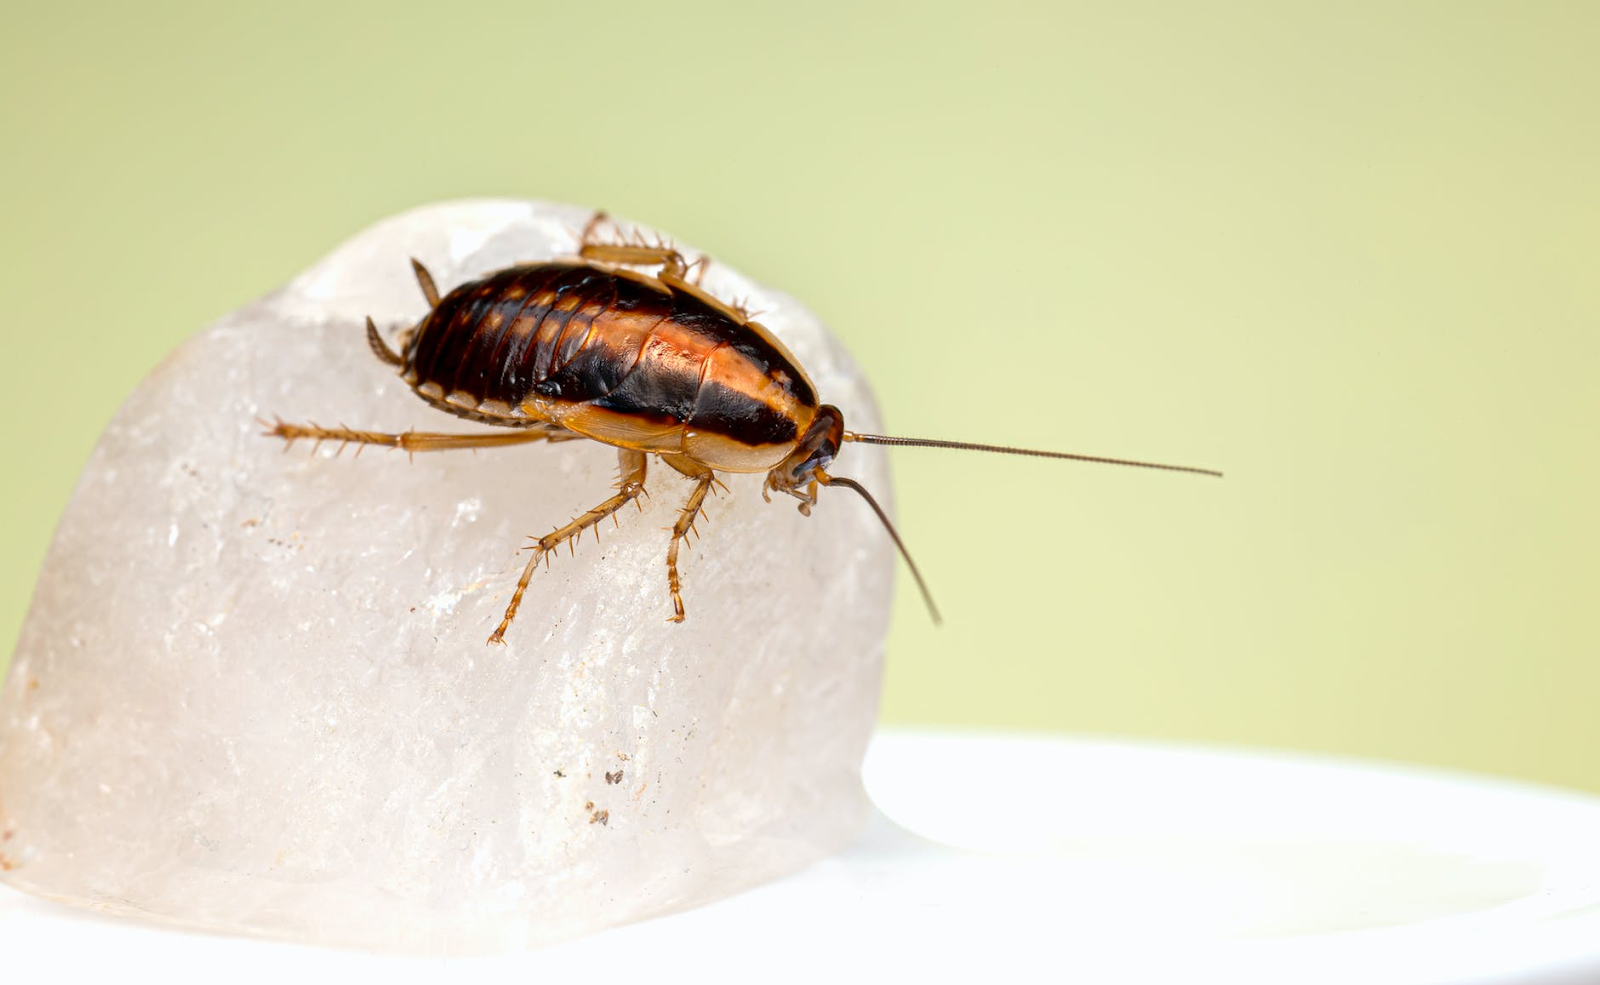 Killing Cockroaches With Bleach: Is It Effective?